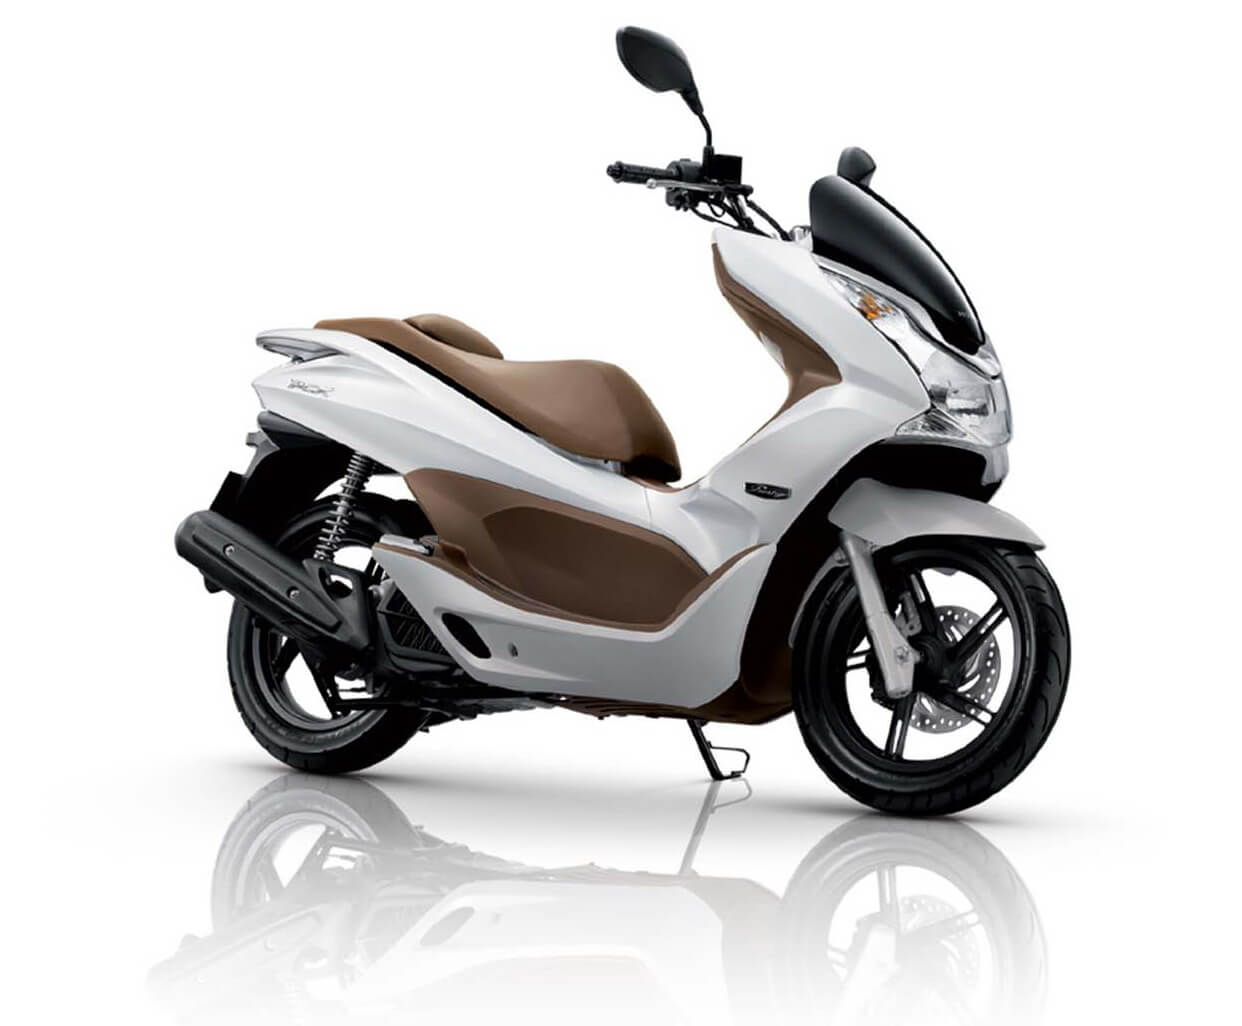 honda pcx price in india pcx mileage images. Black Bedroom Furniture Sets. Home Design Ideas